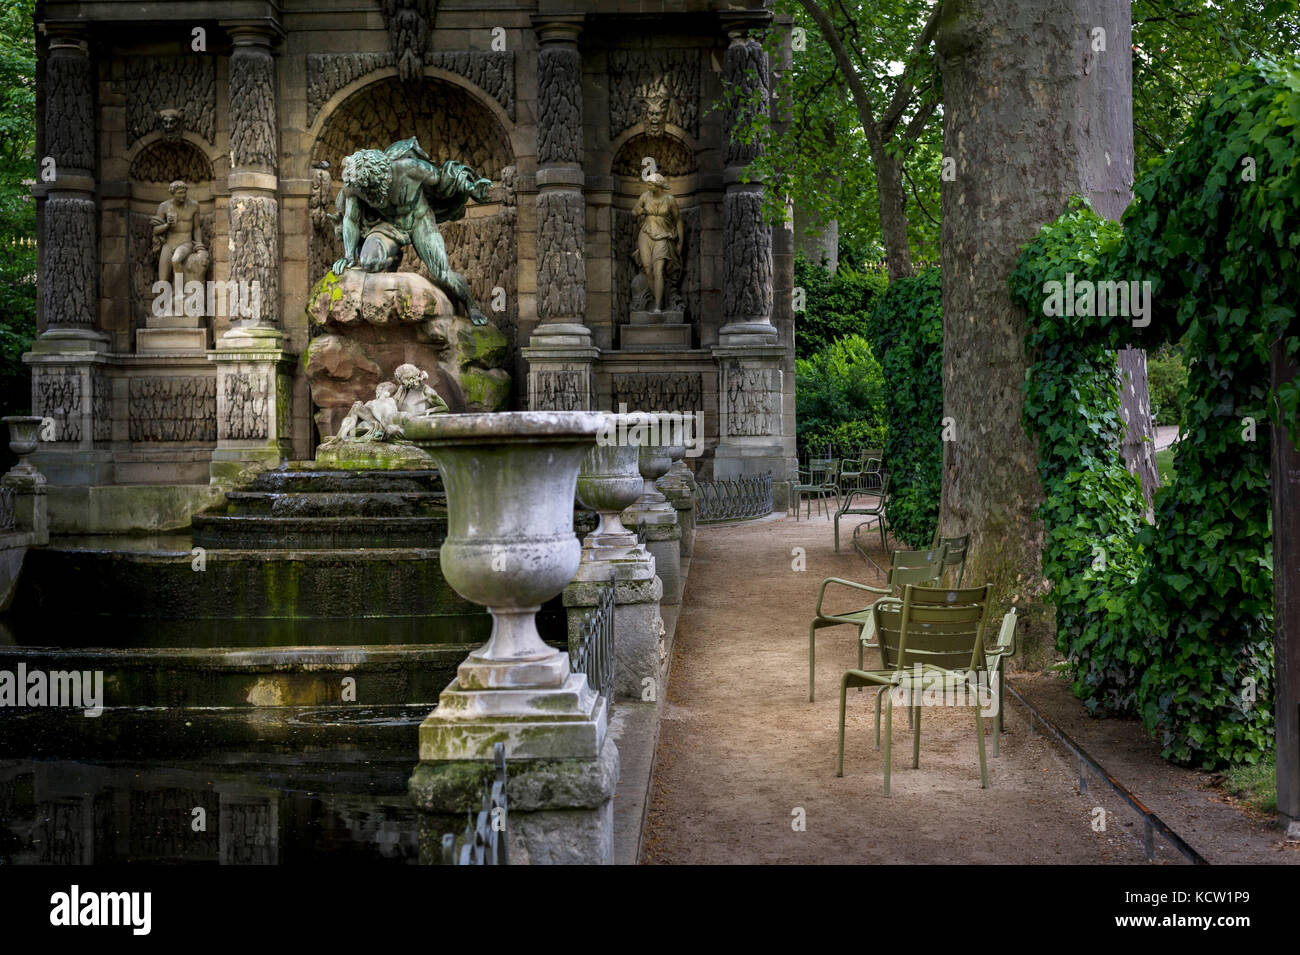 The Medici Fountain (fr La fontaine Médicis), a monumental fountain in the Jardin du Luxembourg in the 6th - Stock Image